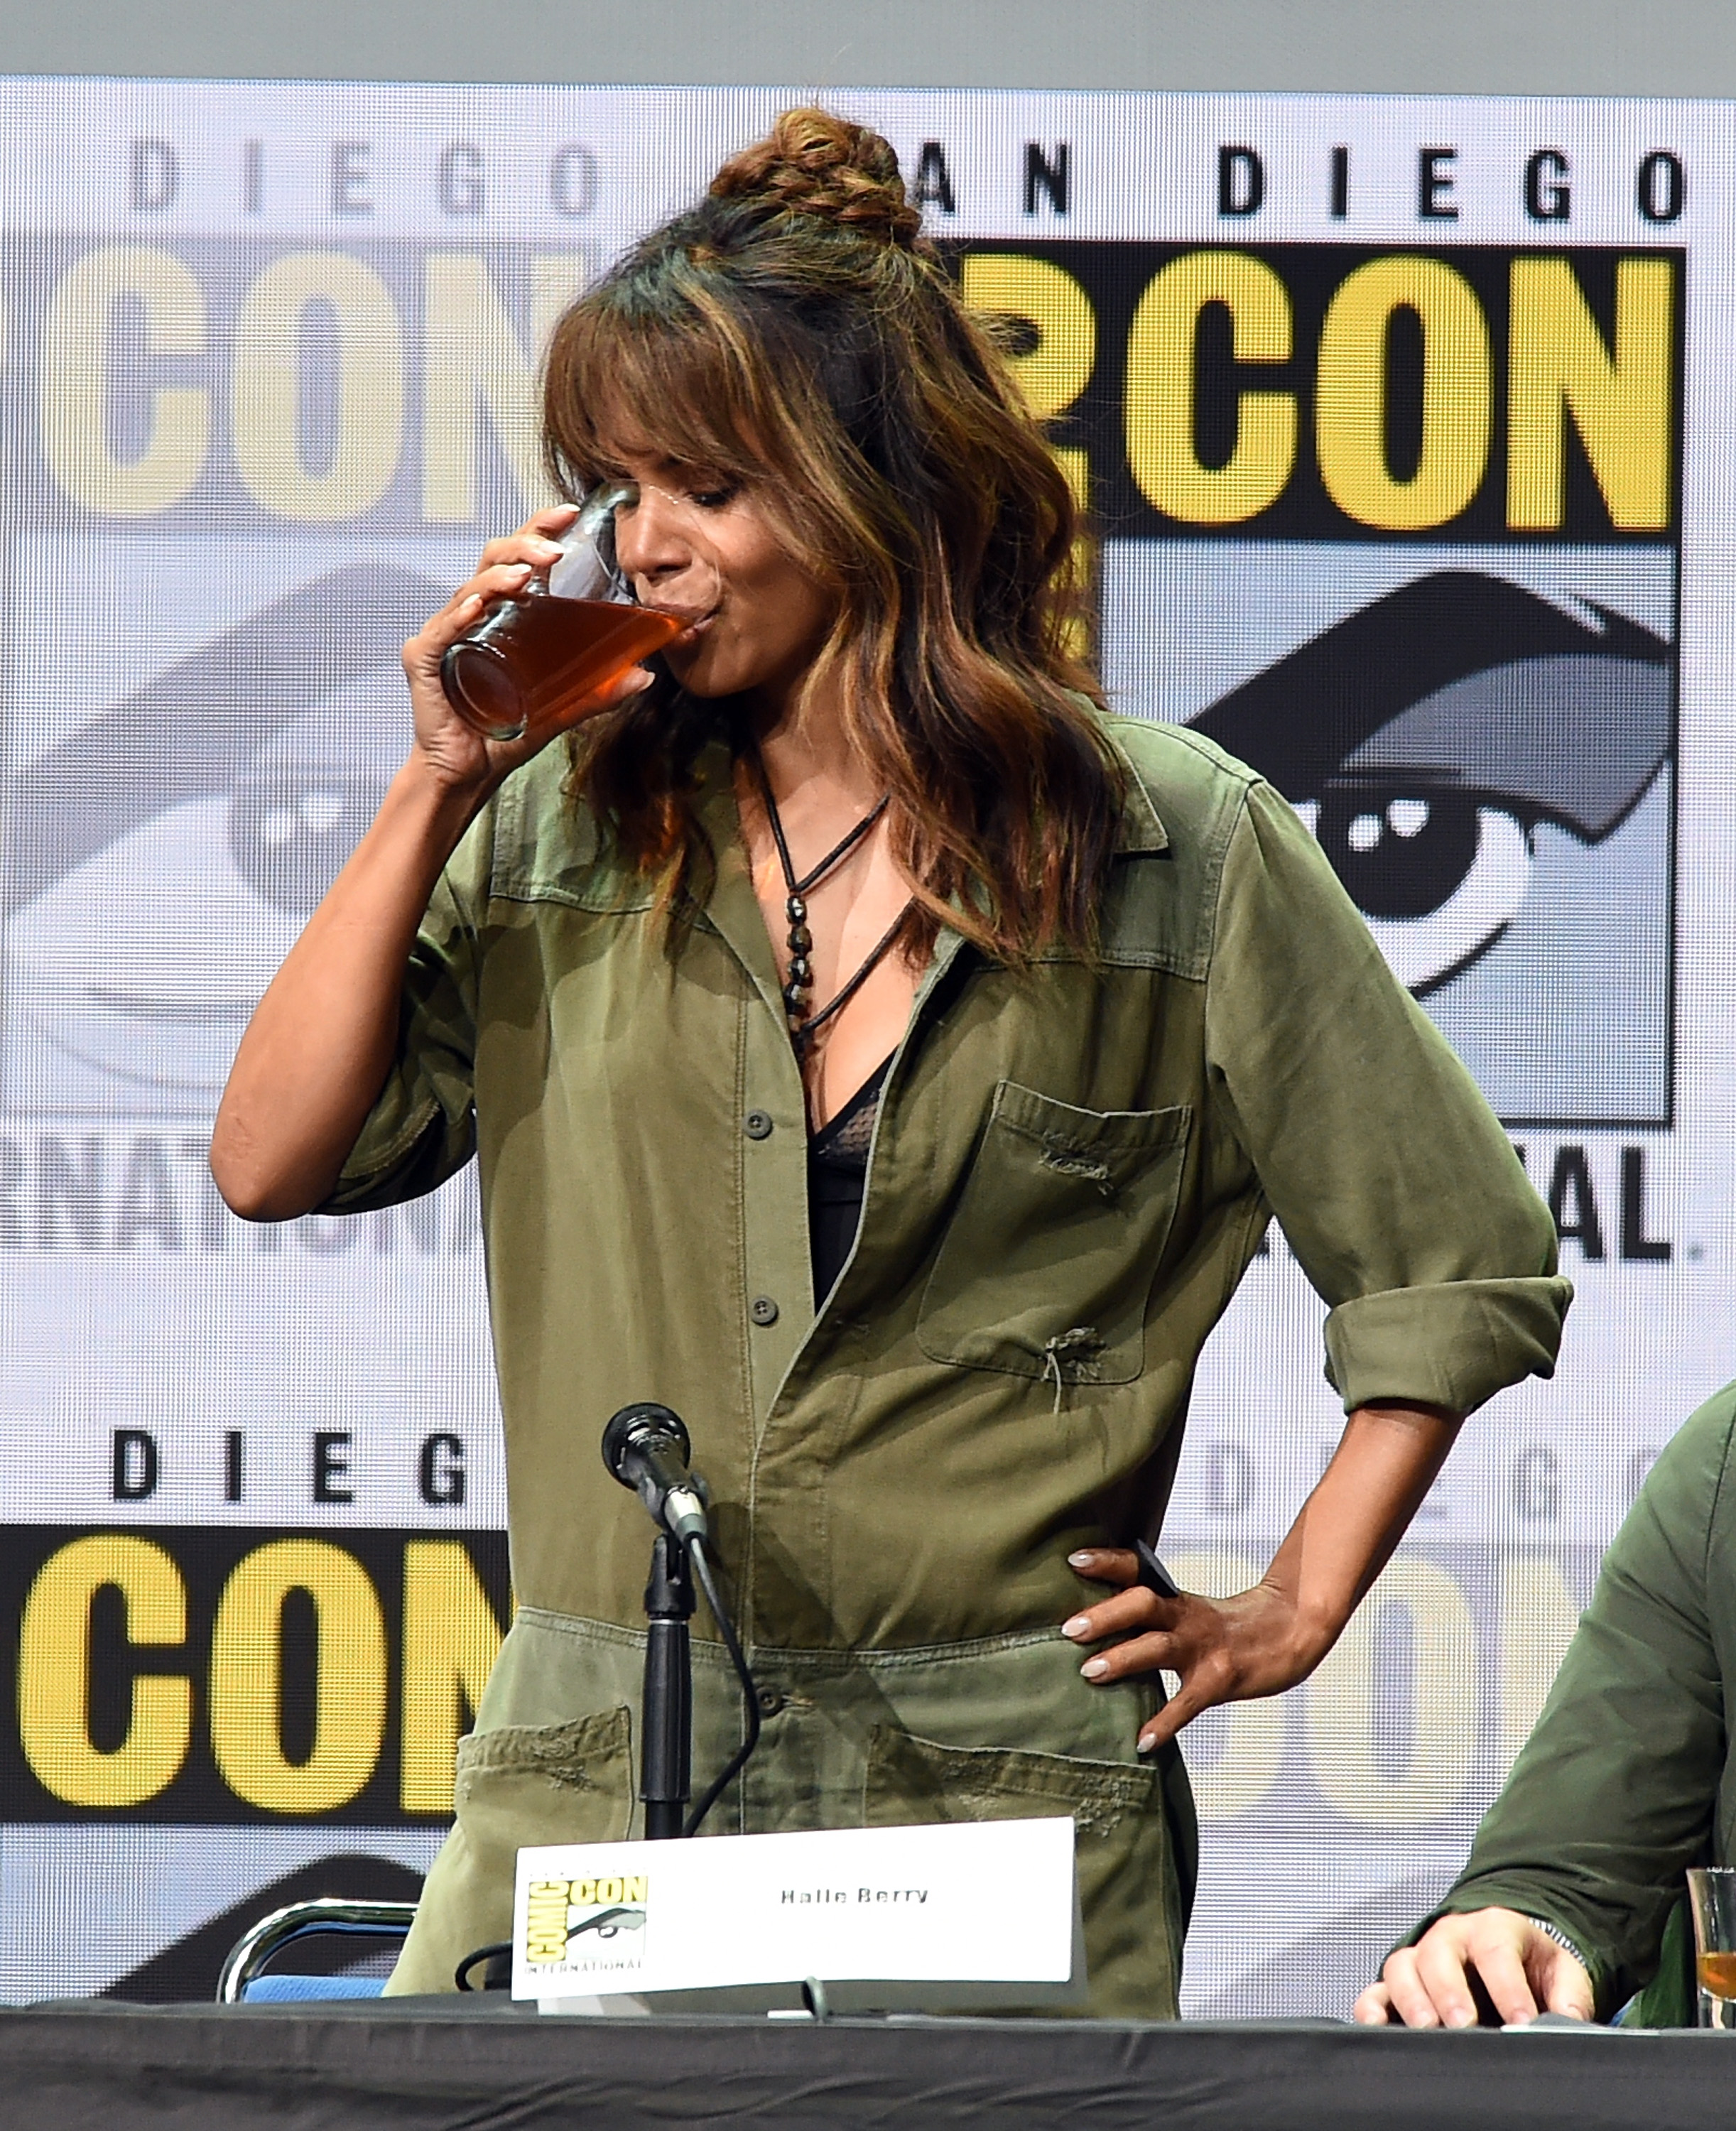 SAN DIEGO, CA - JULY 20:  Actor Halle Berry takes a drink onstage at the 20th Century FOX panel during Comic-Con International 2017 at San Diego Convention Center on July 20, 2017 in San Diego, California.  (Photo by Kevin Winter/Getty Images)